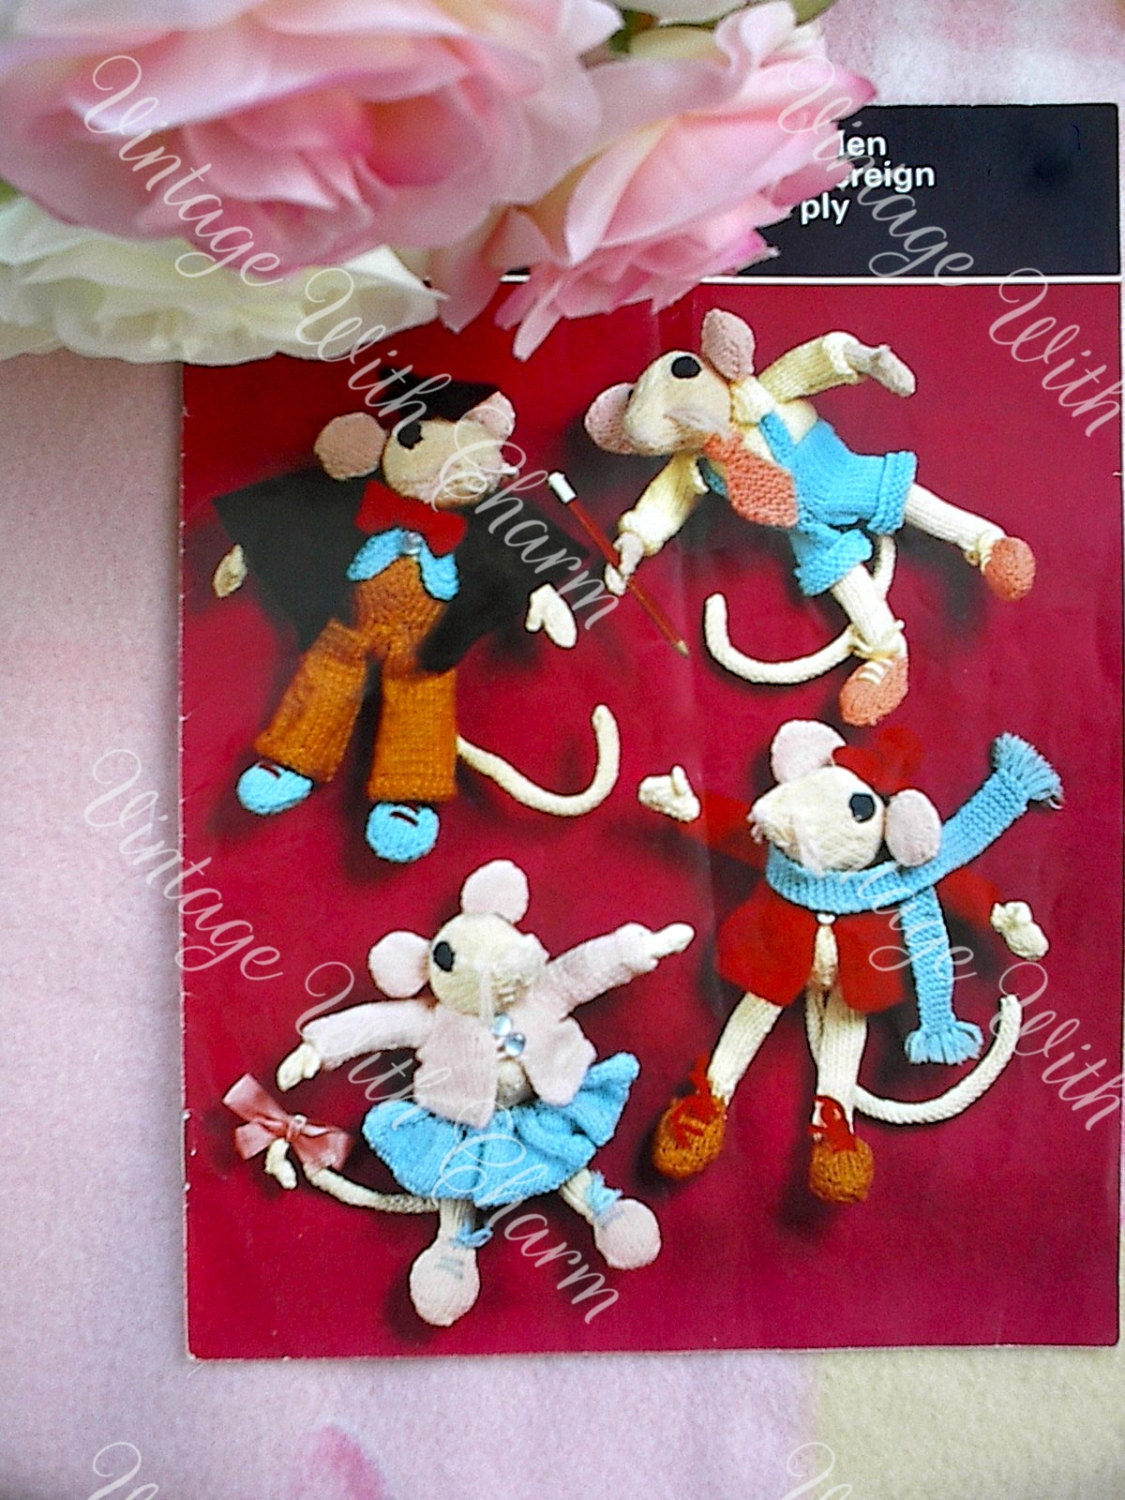 Vintage Knitting Patterns Toys : Vintage Knitting Pattern Toy 4 Mice Friends In Clothes.